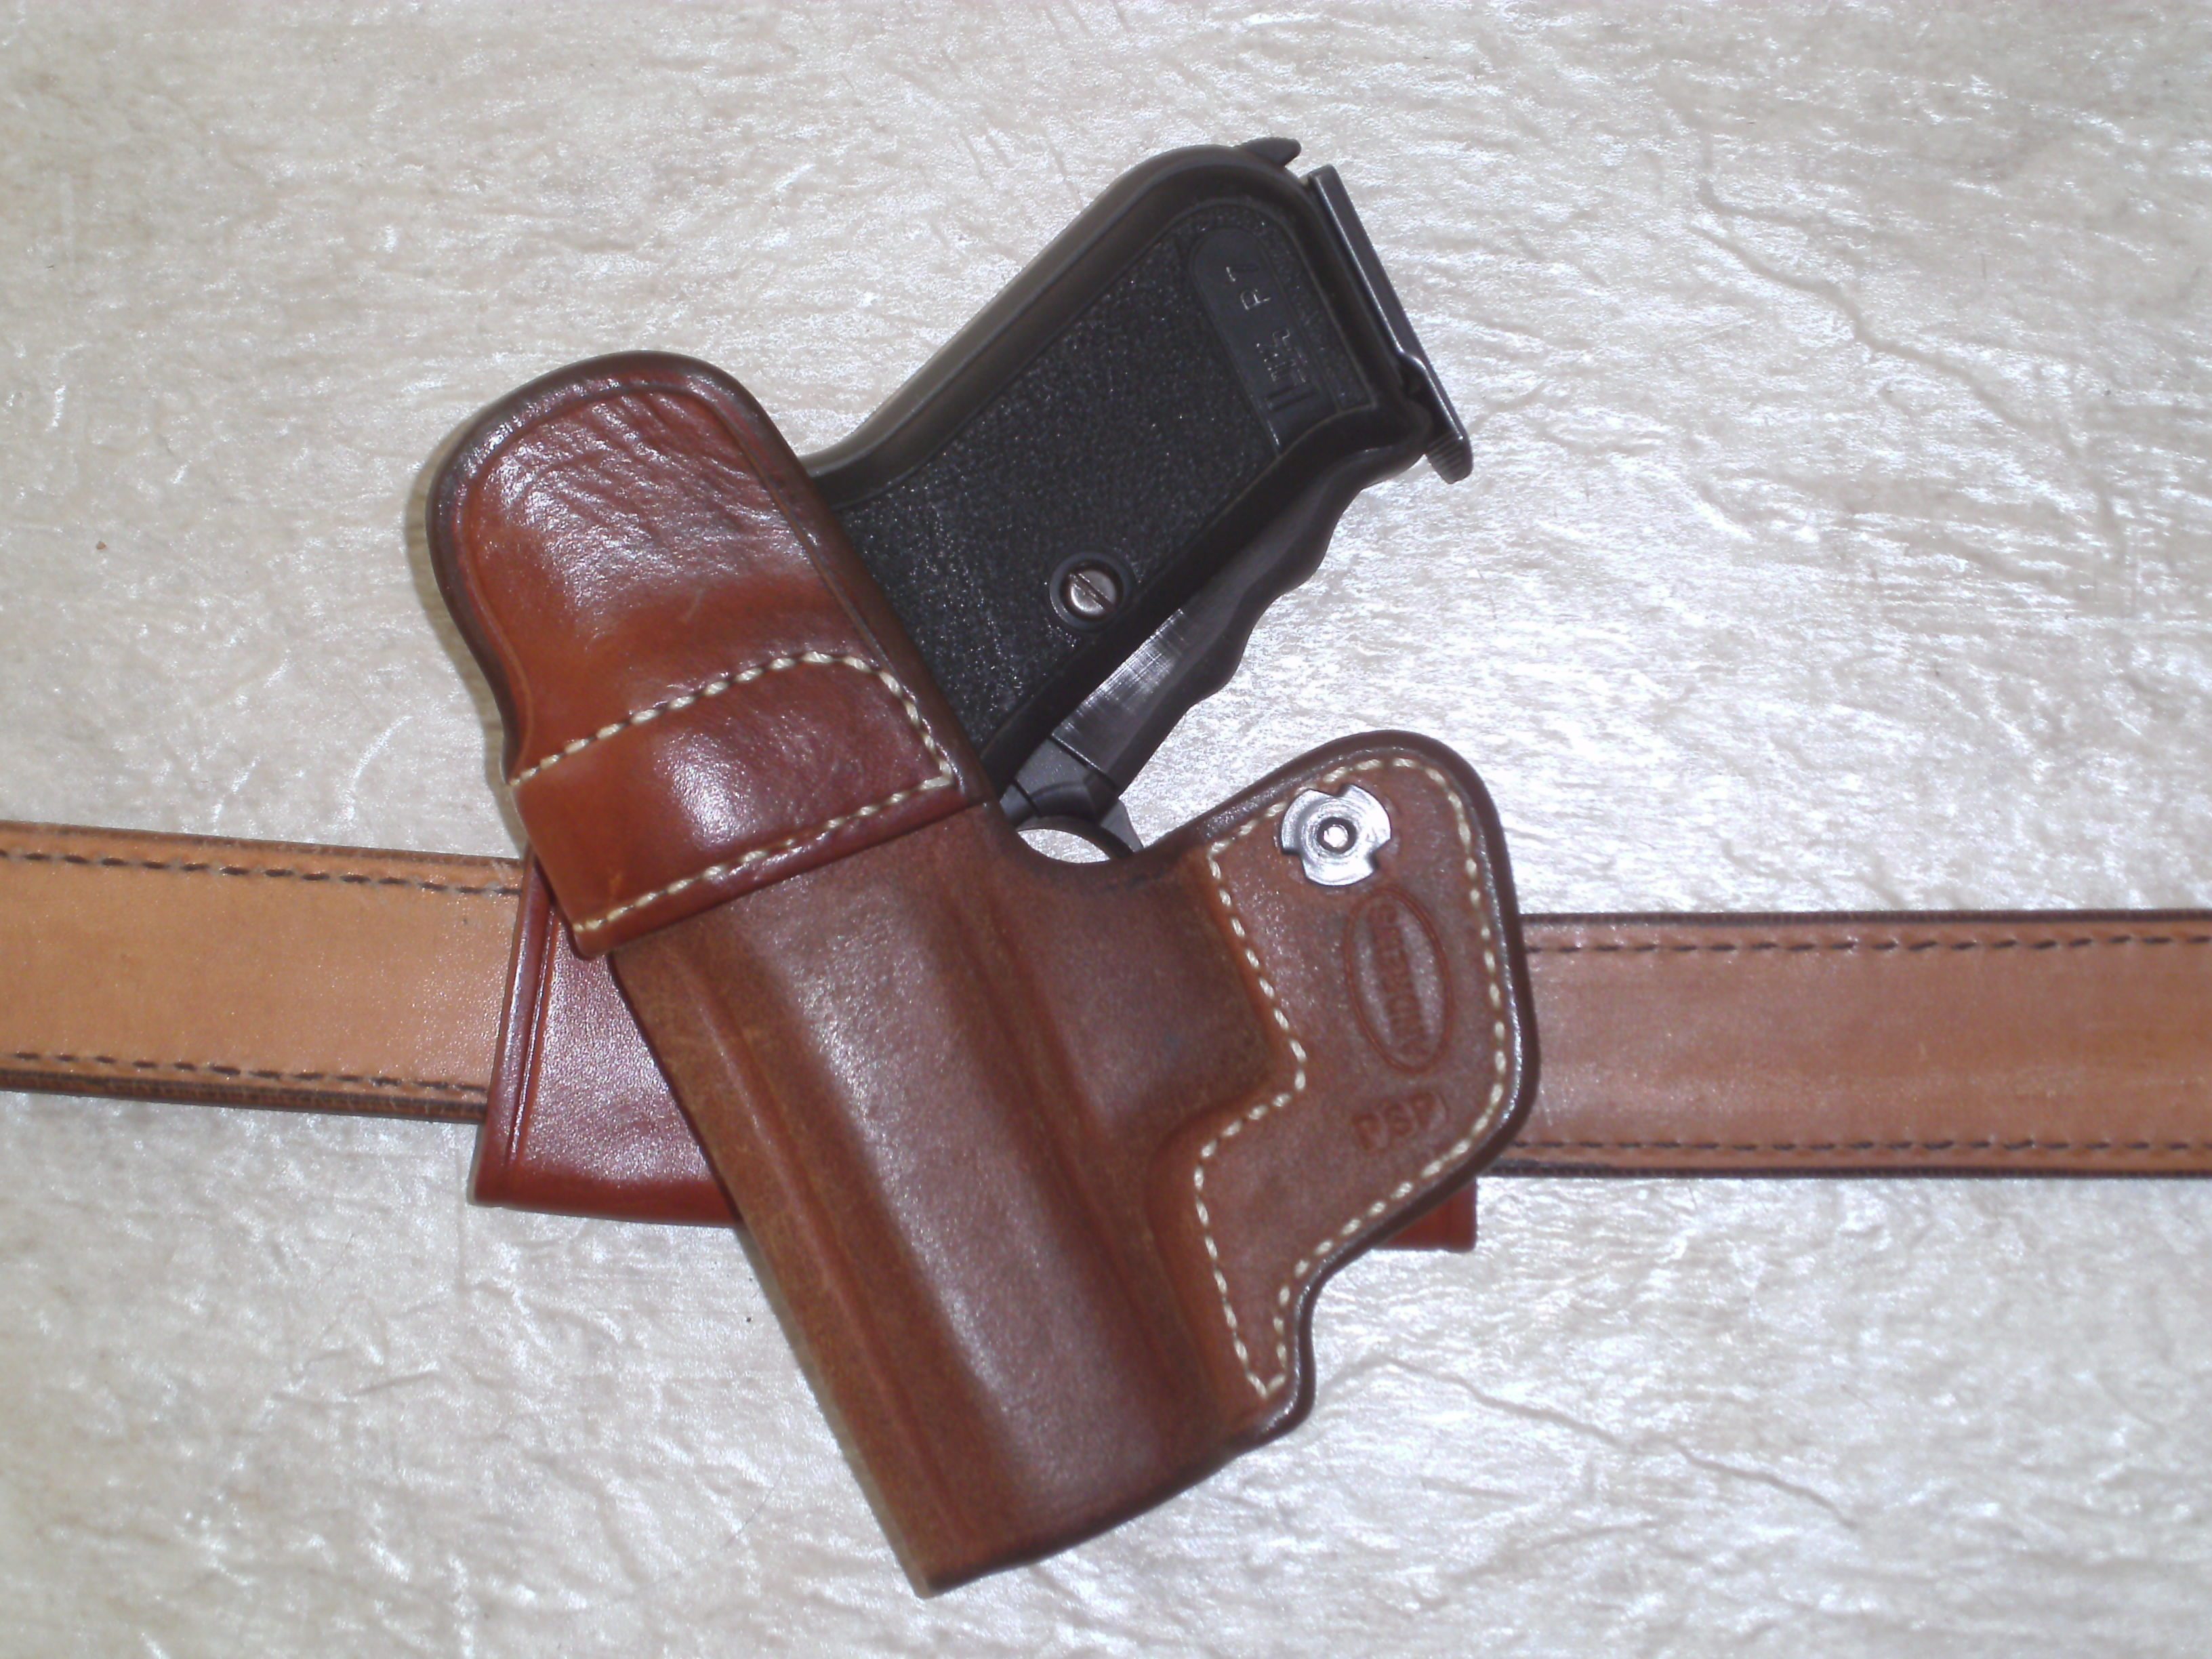 P7 PSP Gunleather for sale-sany1717.jpg